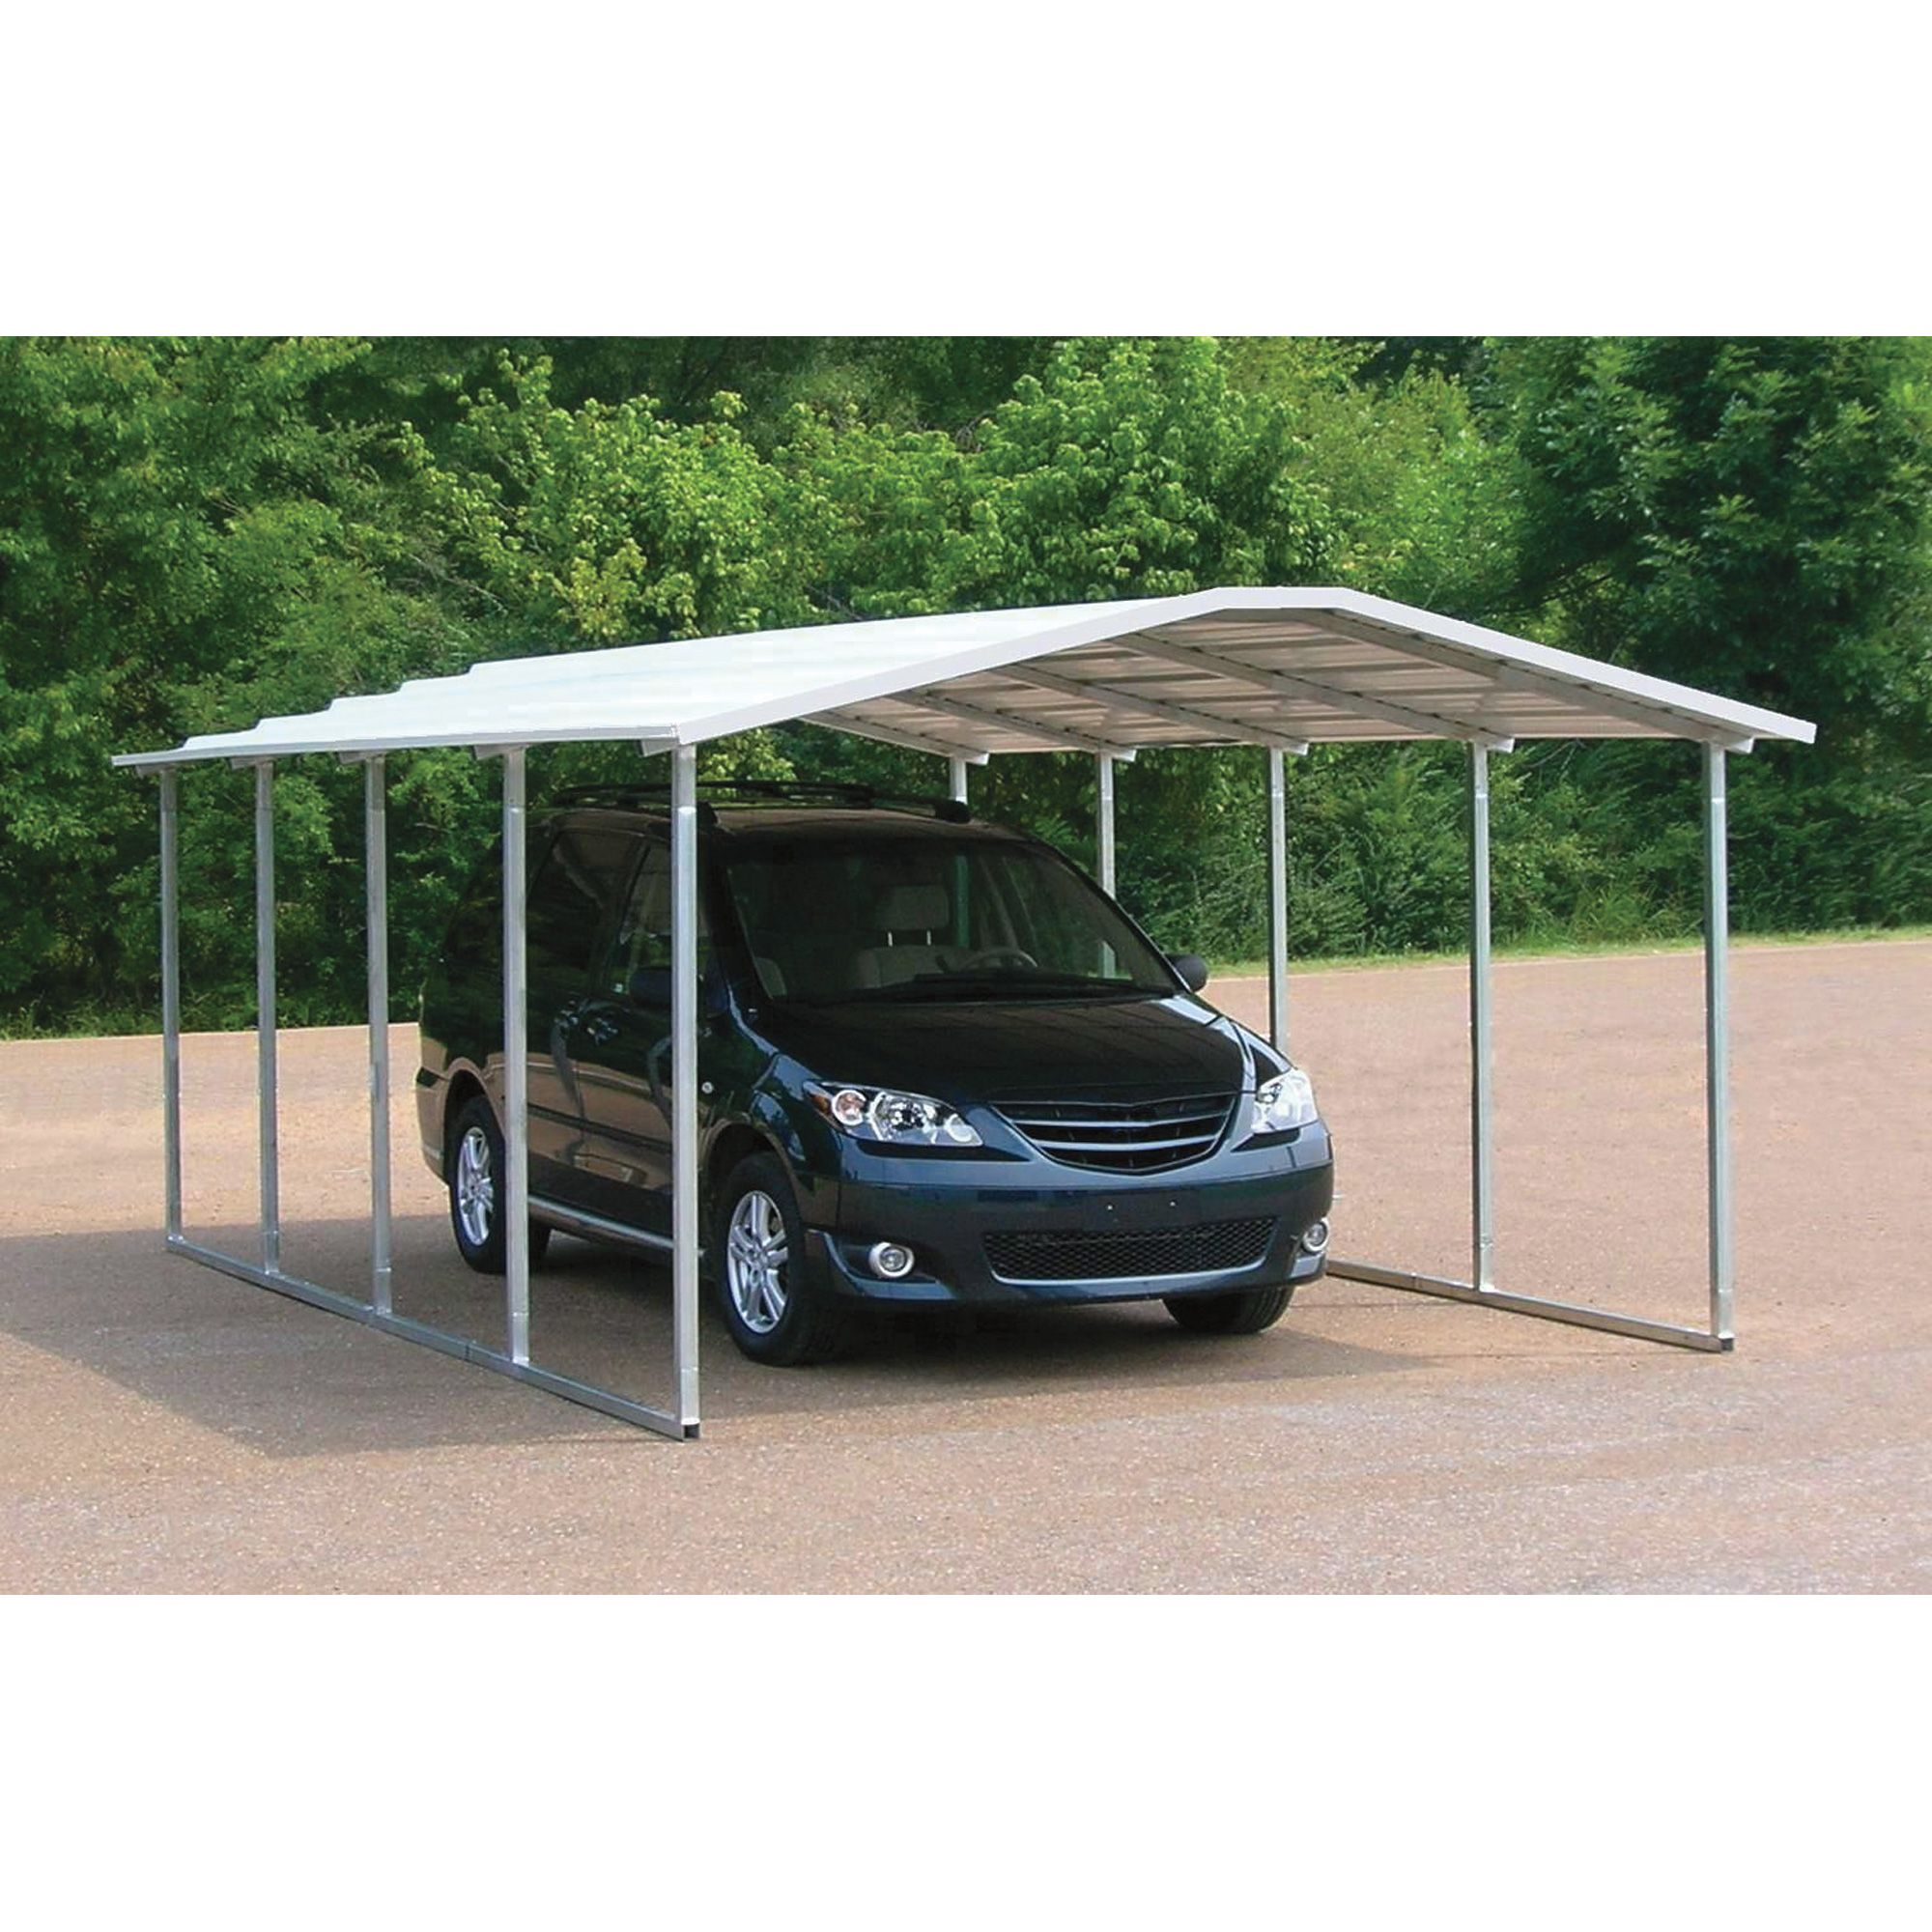 Http Www Northerntool Com Shop Tools Product 200416301 200416301 Cm Mmc Google Pla Roof Design Steel Carports Portable Carport